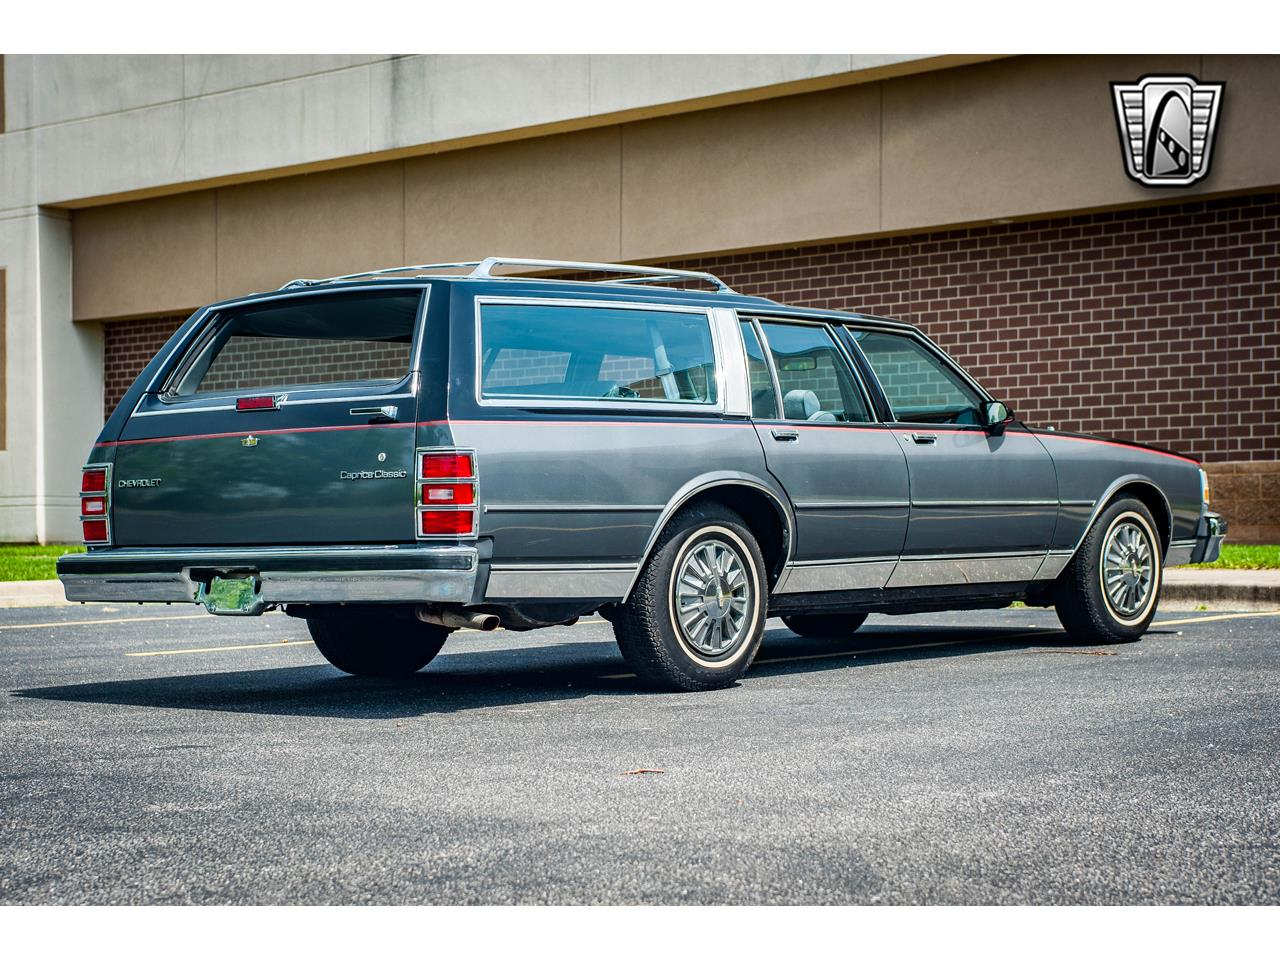 Large Picture of '89 Chevrolet Caprice located in O'Fallon Illinois Offered by Gateway Classic Cars - St. Louis - QB9K